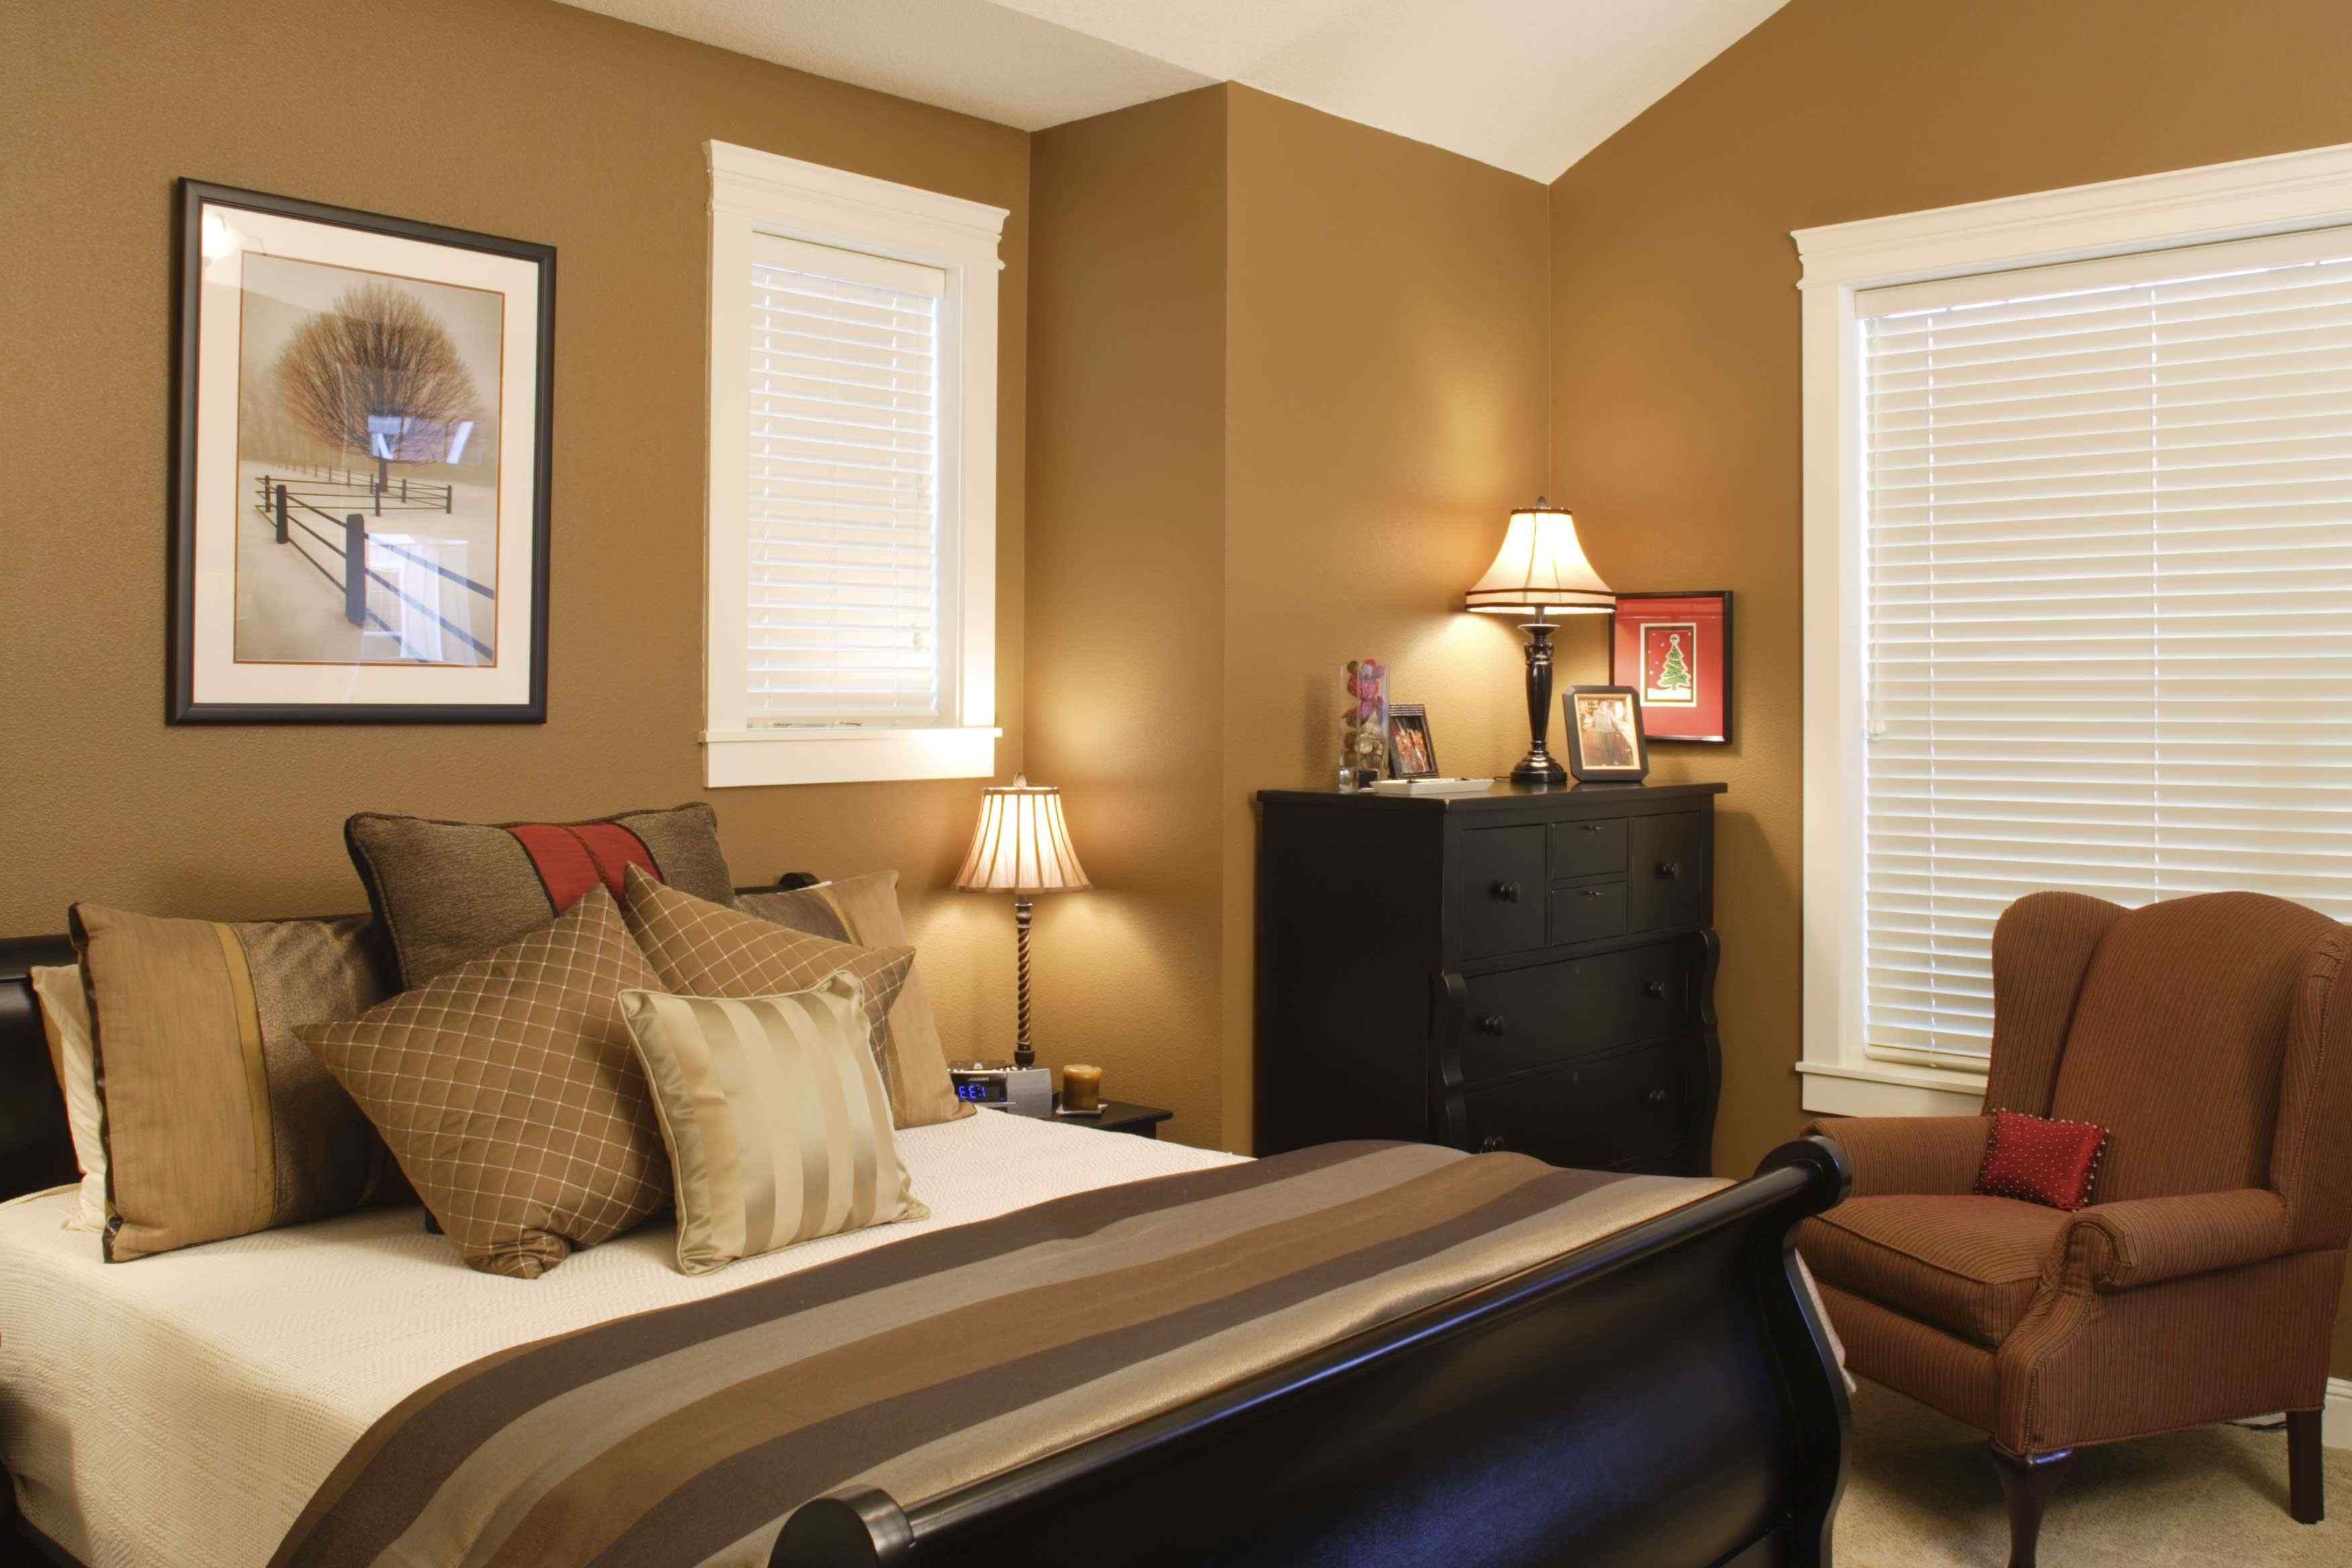 Bedroom Ideas Master For Couples Rustic Color Schemes Fresh Bedroom Ideas Master For Couples Bedroom Wall Colors Small Bedroom Colours Bedroom Color Schemes